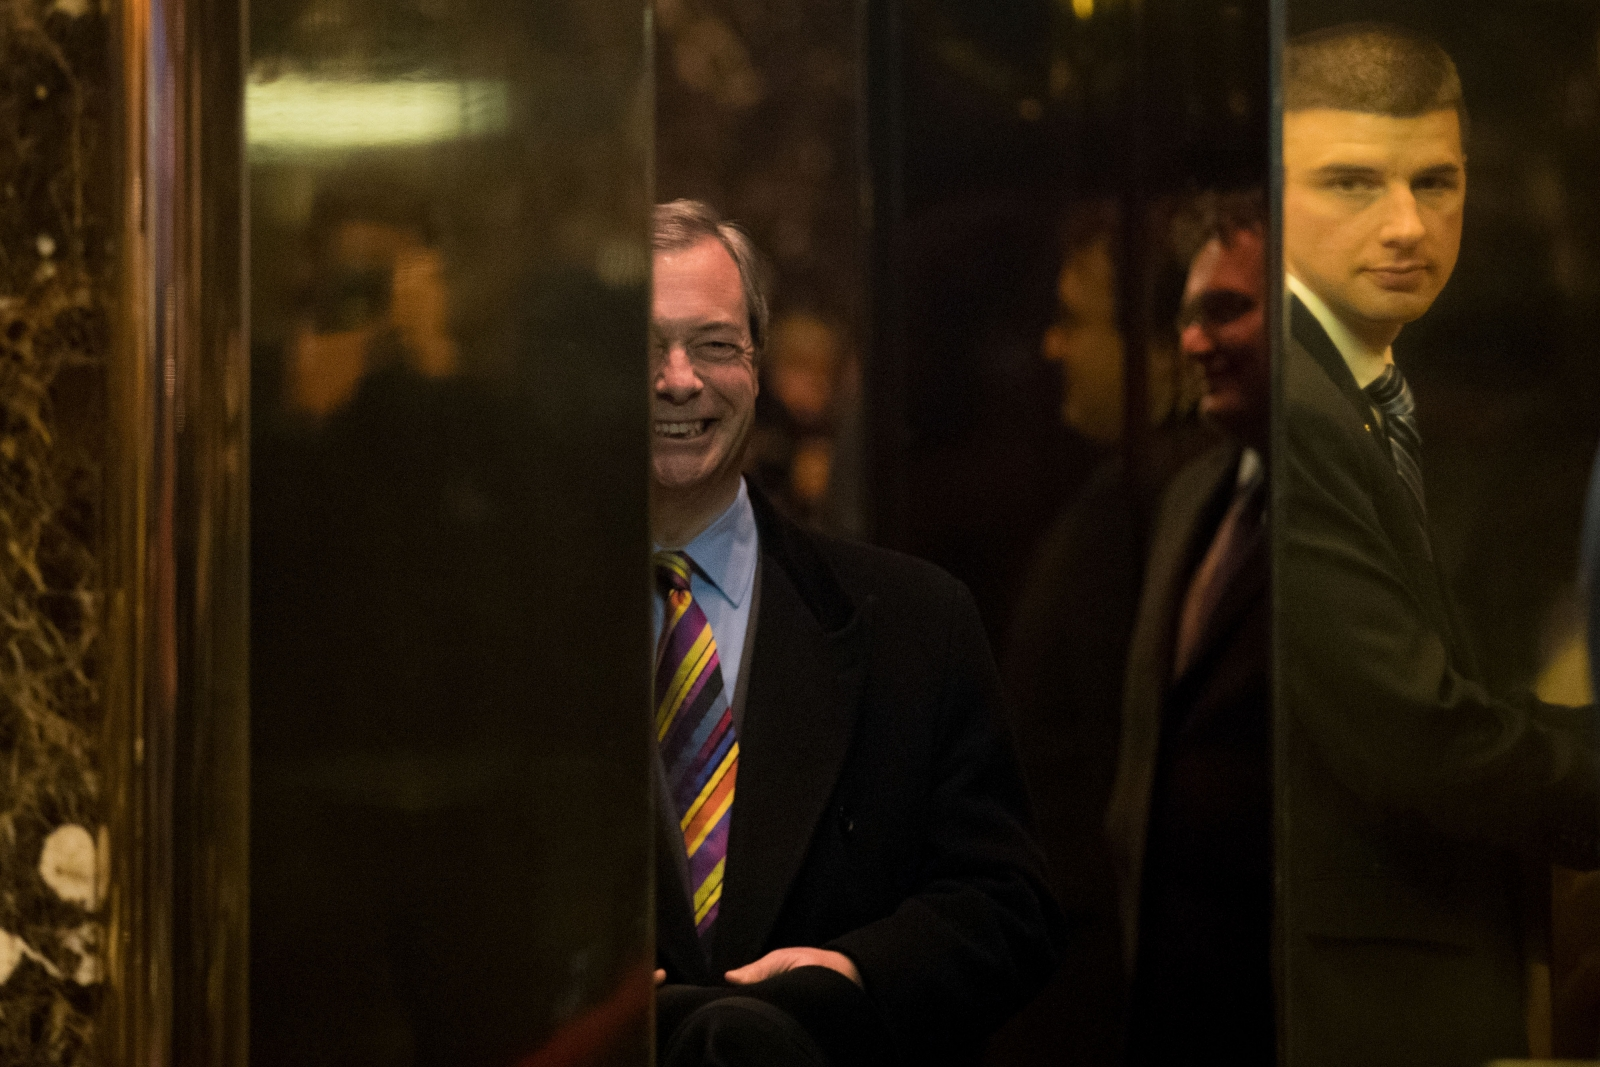 Nigel Farage enters Trump Tower